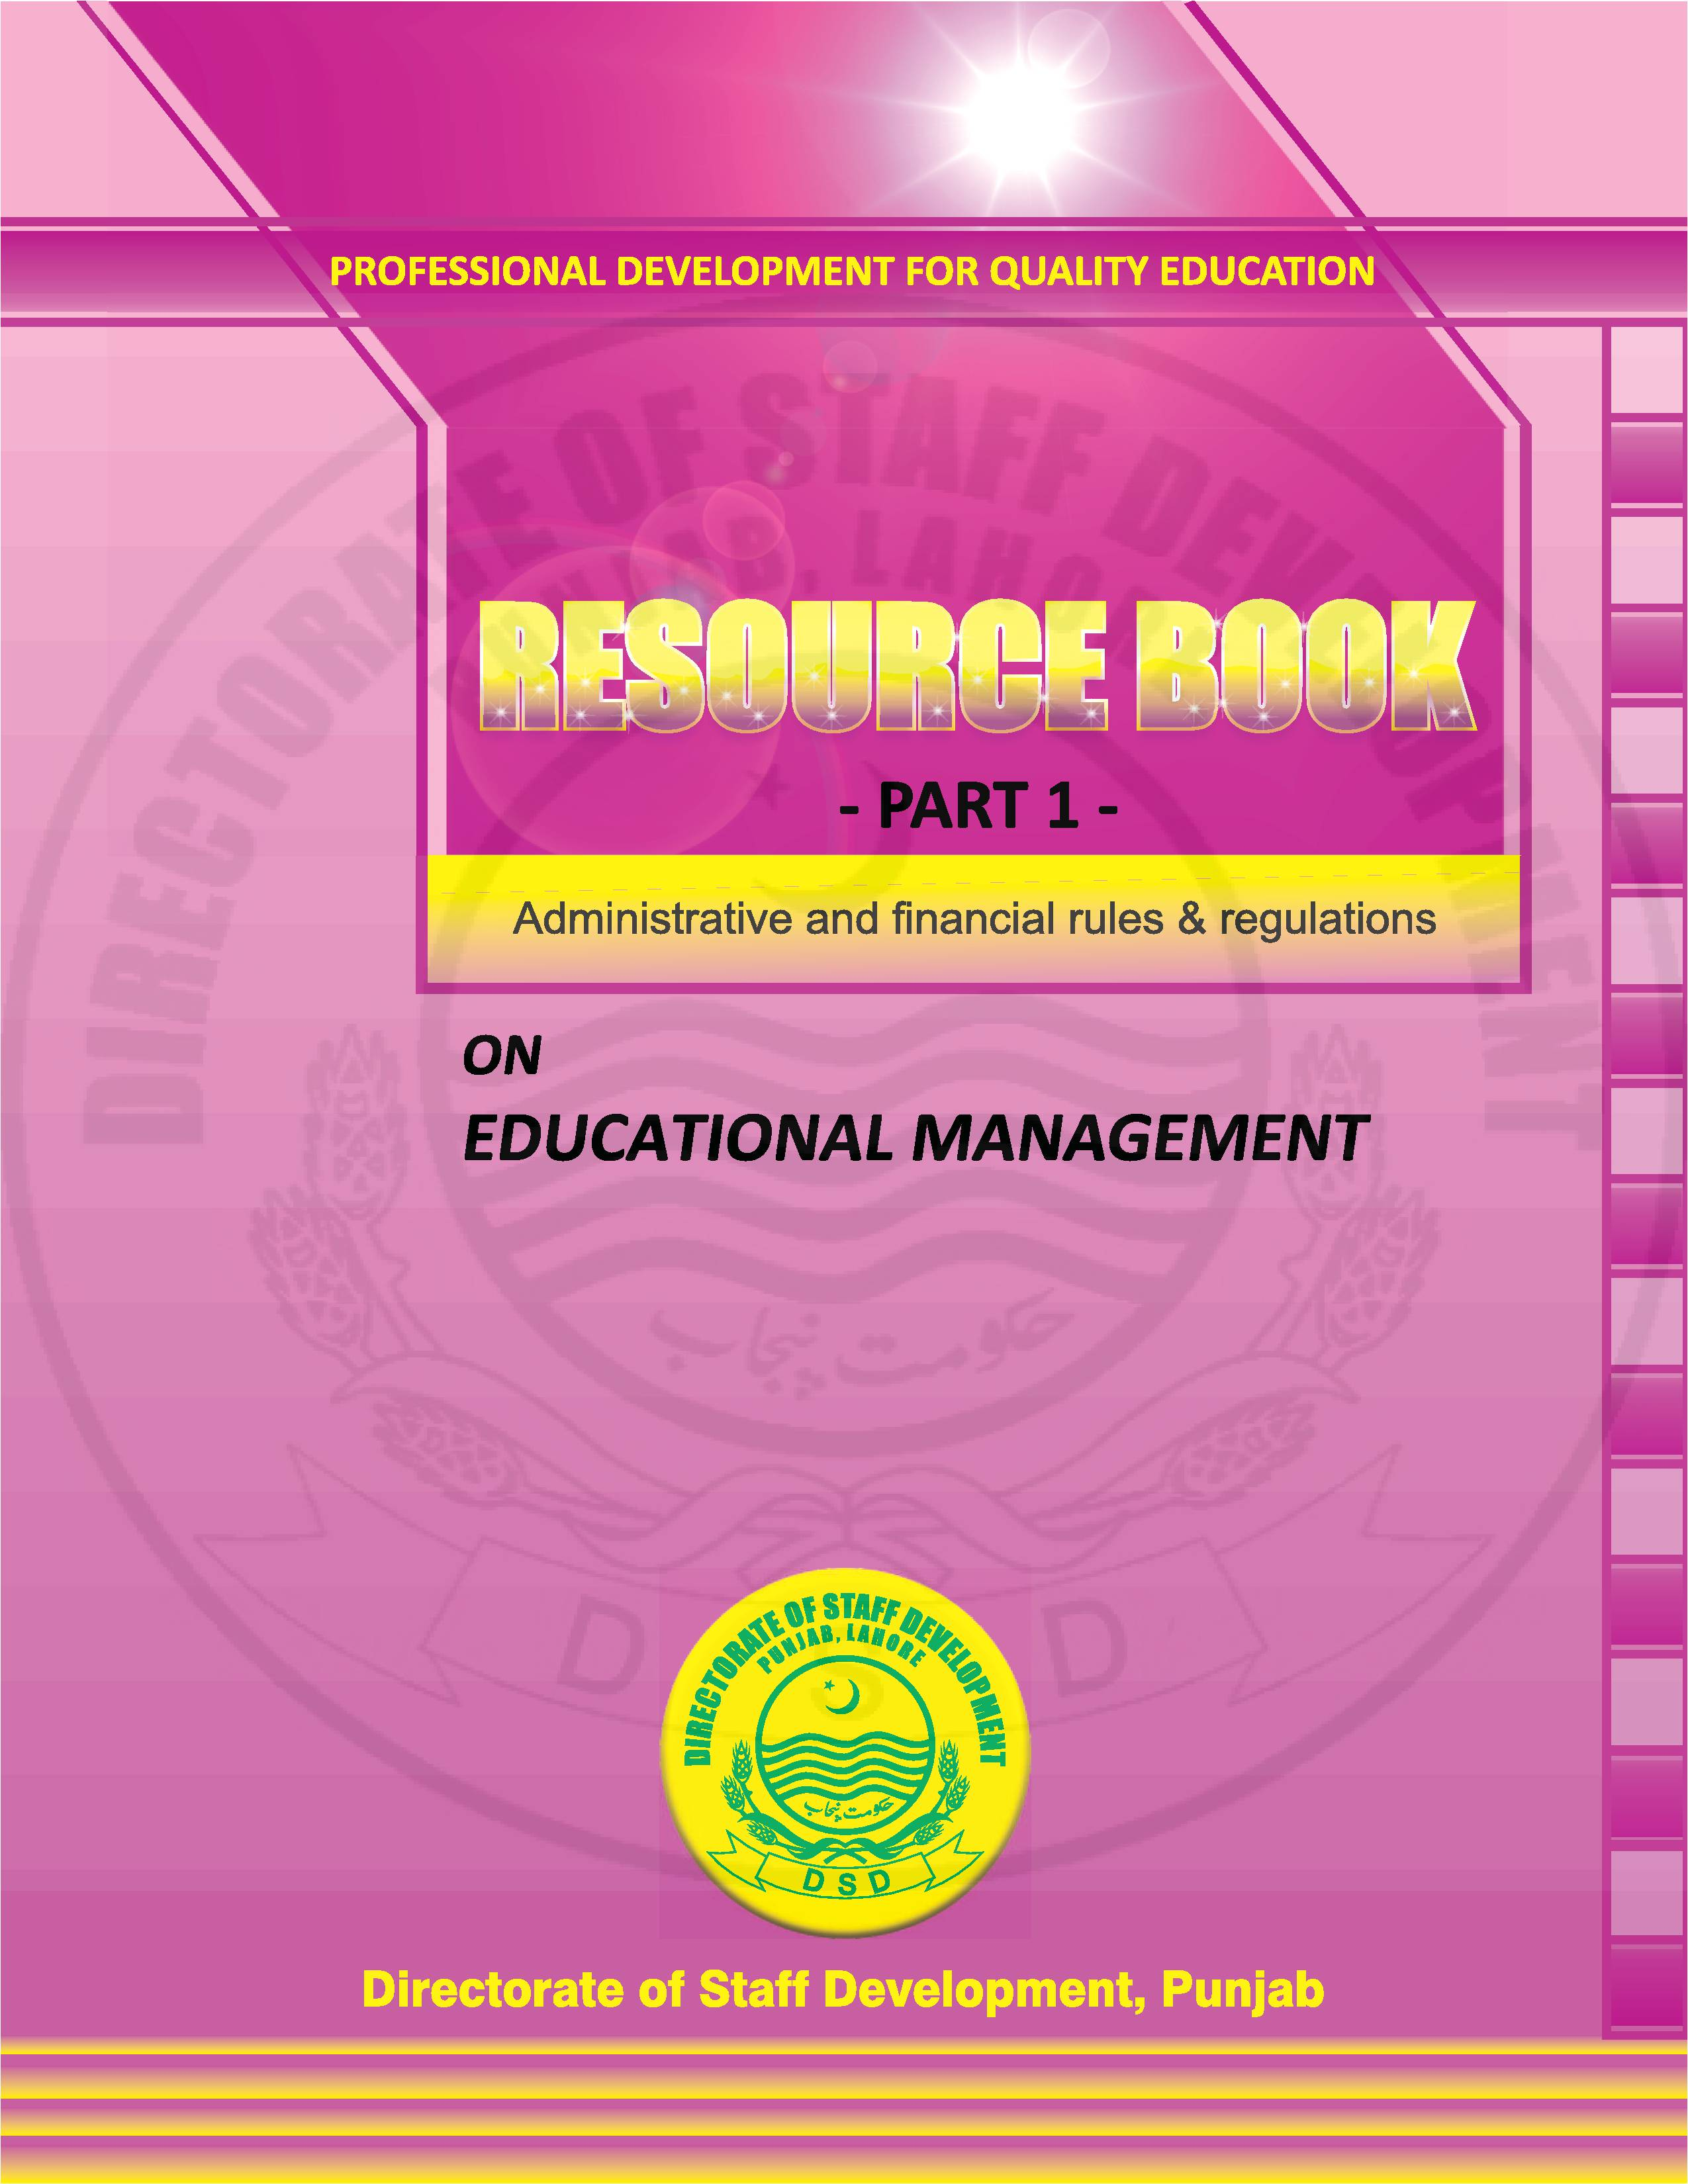 The Resource Book Cover Page